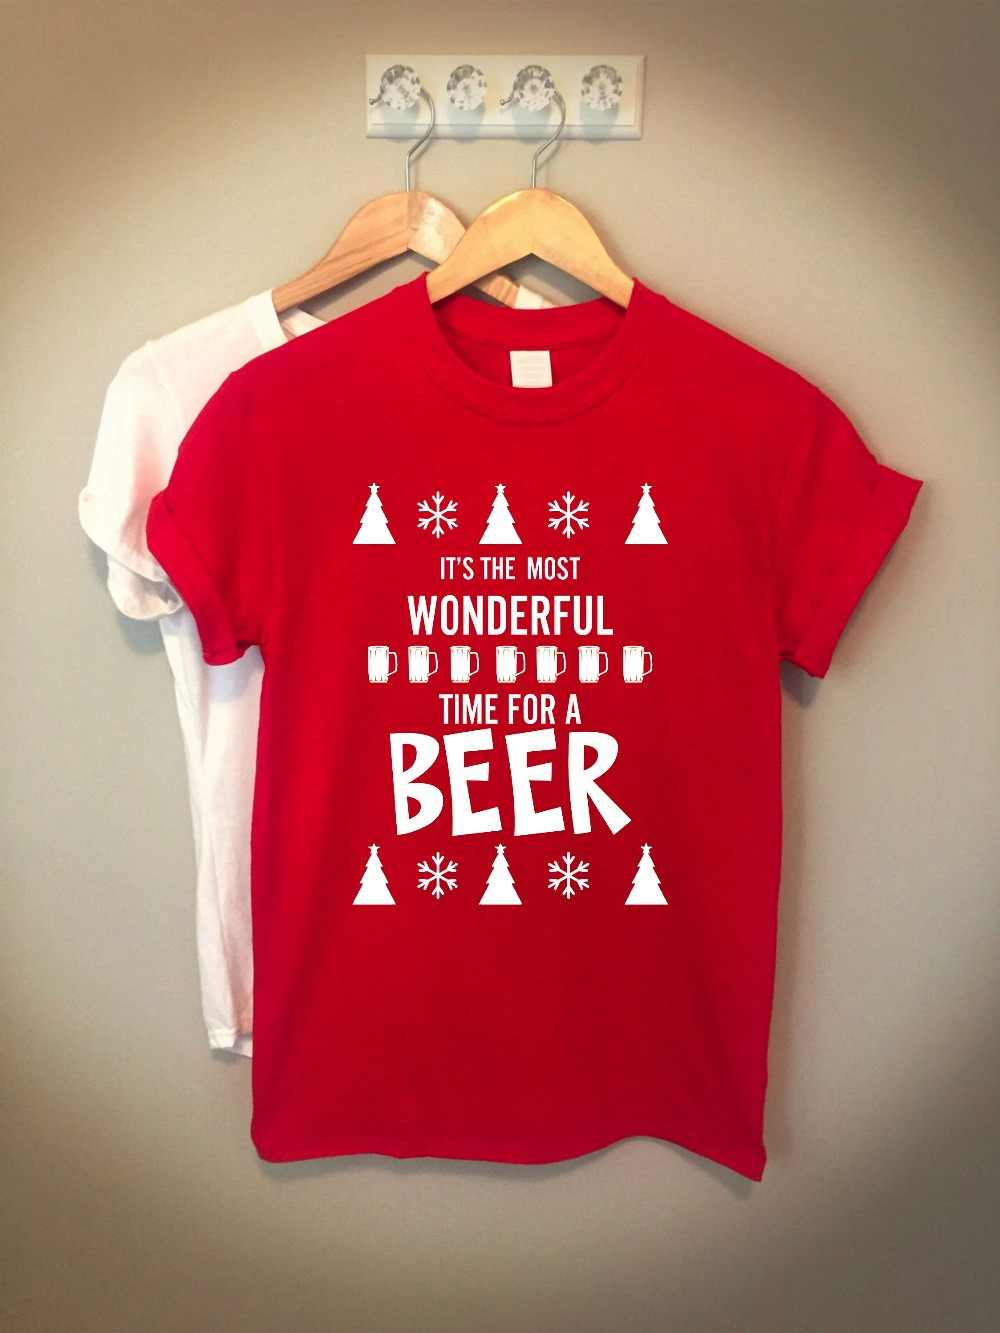 bb9e68597e Detail Feedback Questions about It is most wonderful time for beer t shirt  Christmas celebration Gift For family Drinking Shirt red party shirt  aesthetic ...